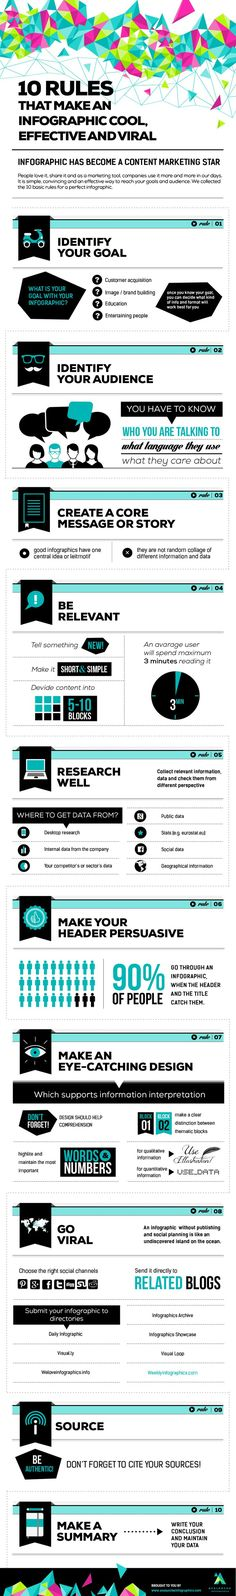 10 Rules That Make An Infographic Cool, Effective and Viral